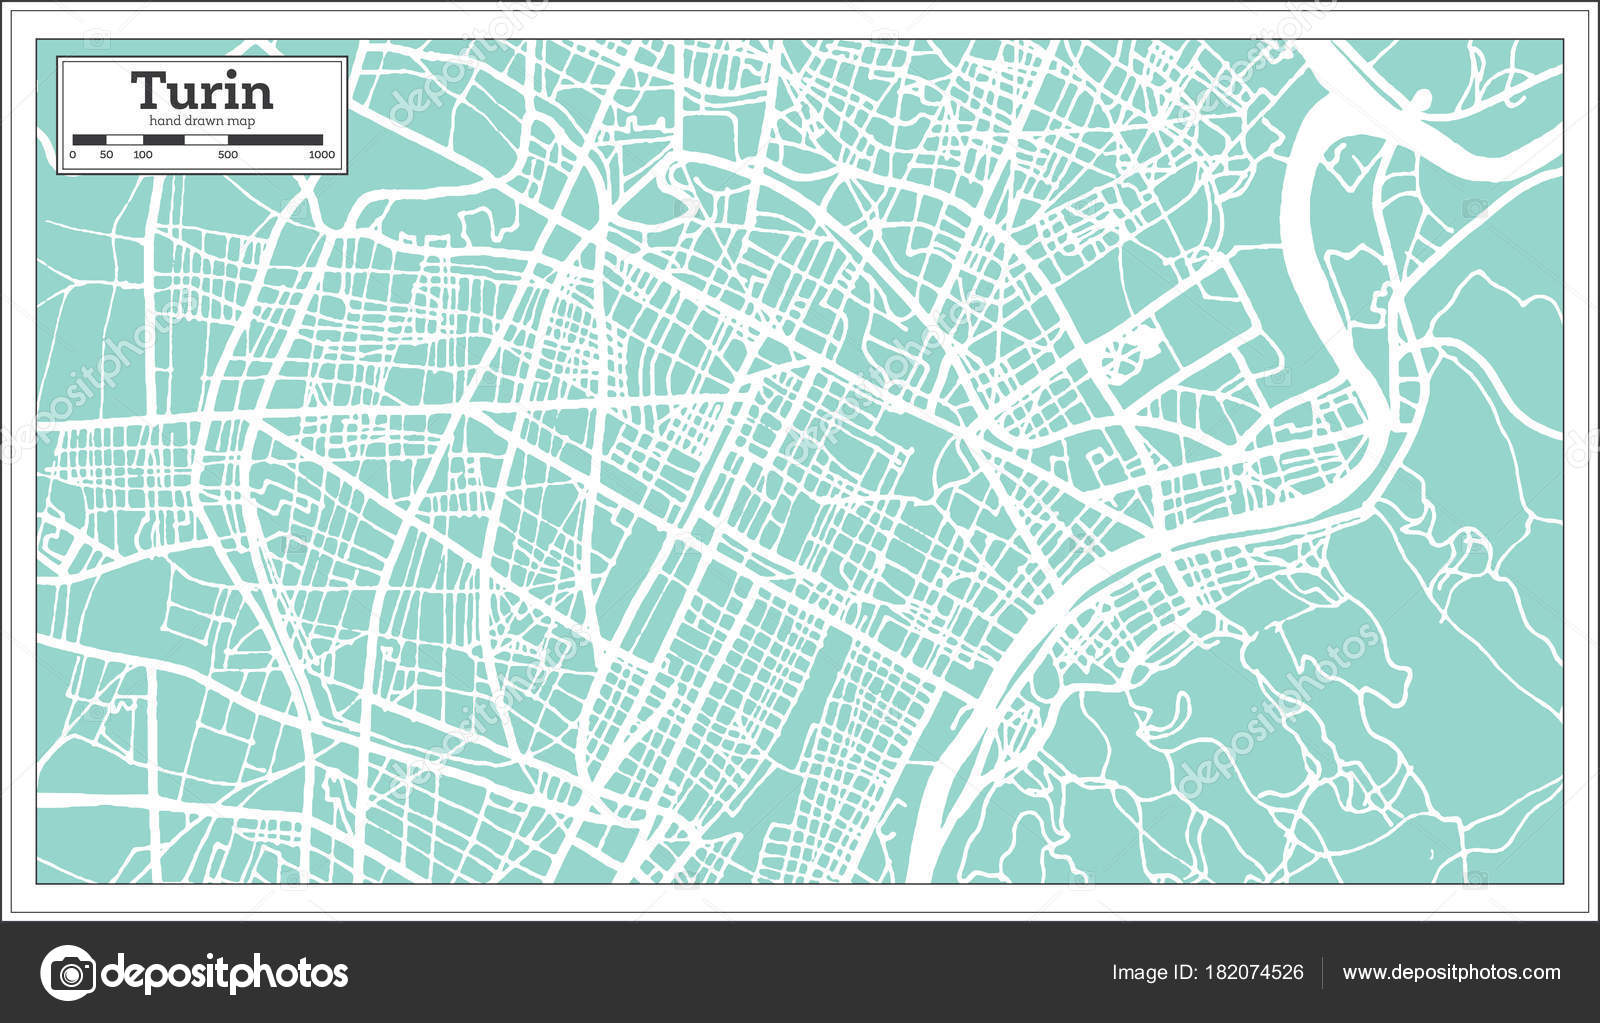 Turin italy city map in retro style outline map stock vector turin italy city map in retro style outline map stock vector thecheapjerseys Choice Image